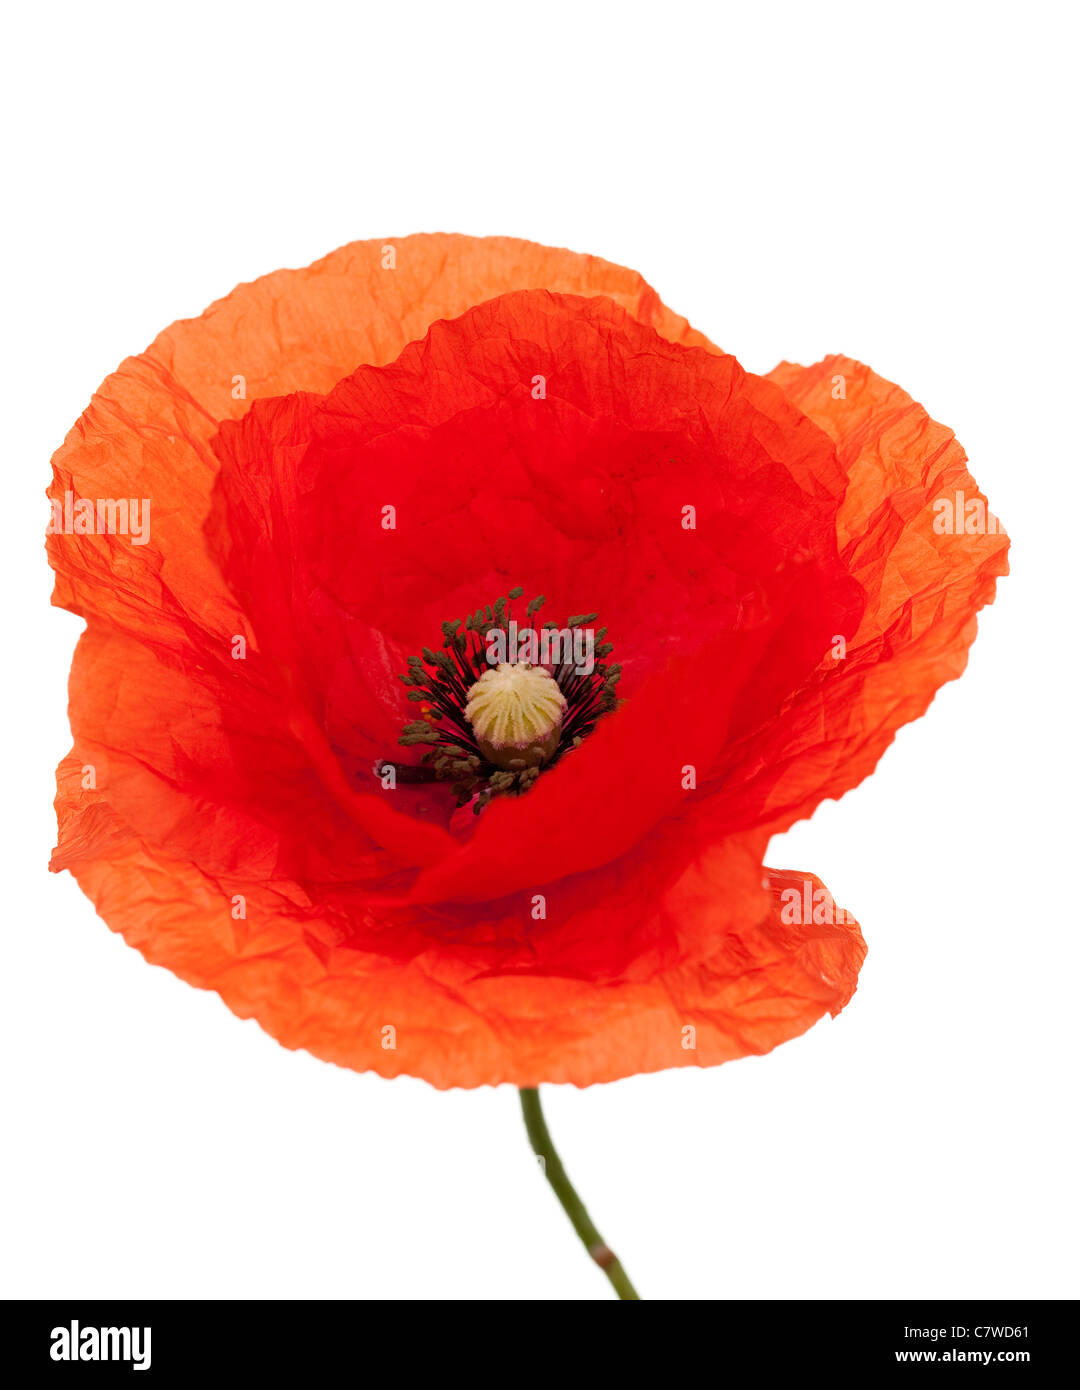 red single poppy with stem on white background - Stock Image